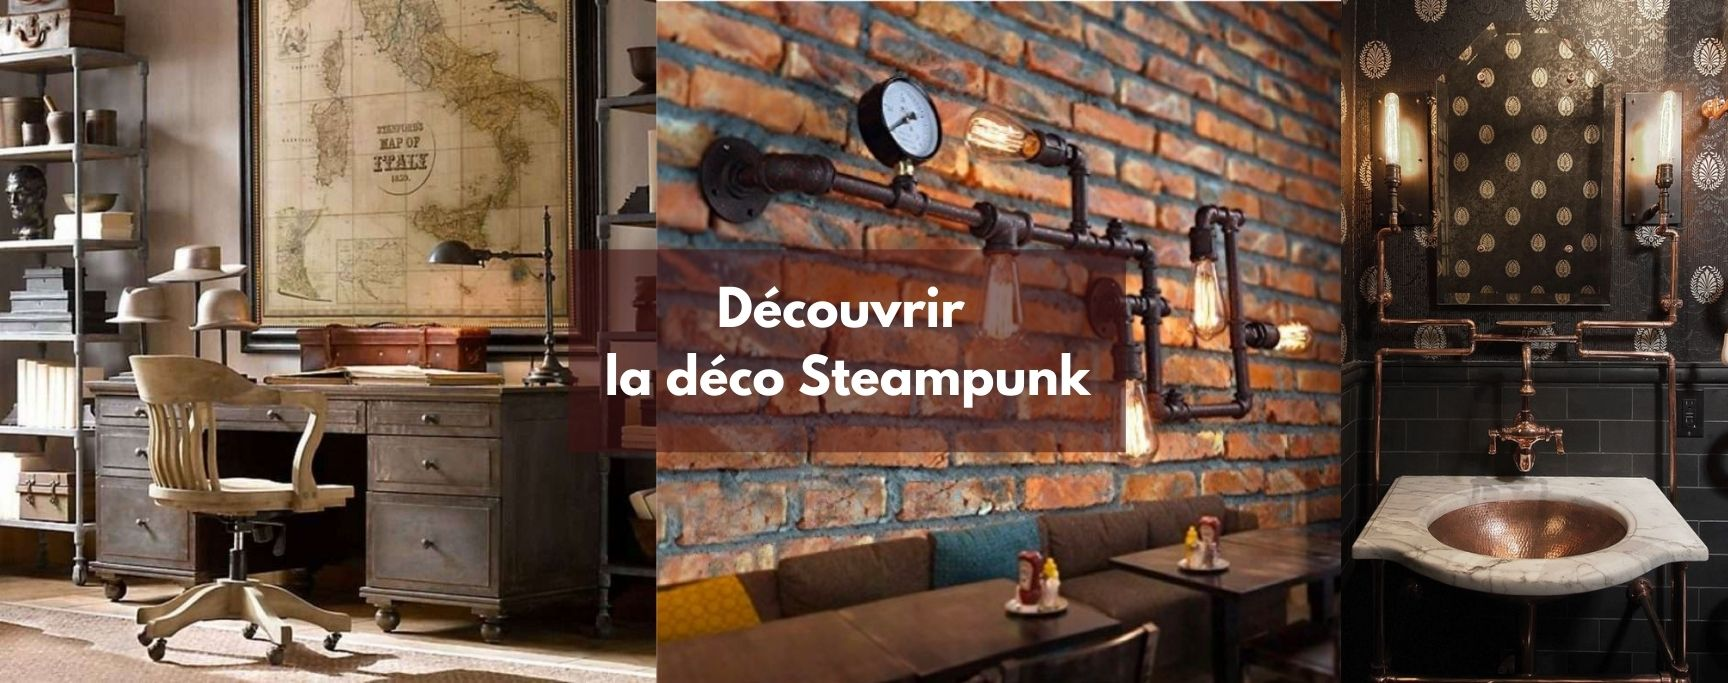 deco steampunk